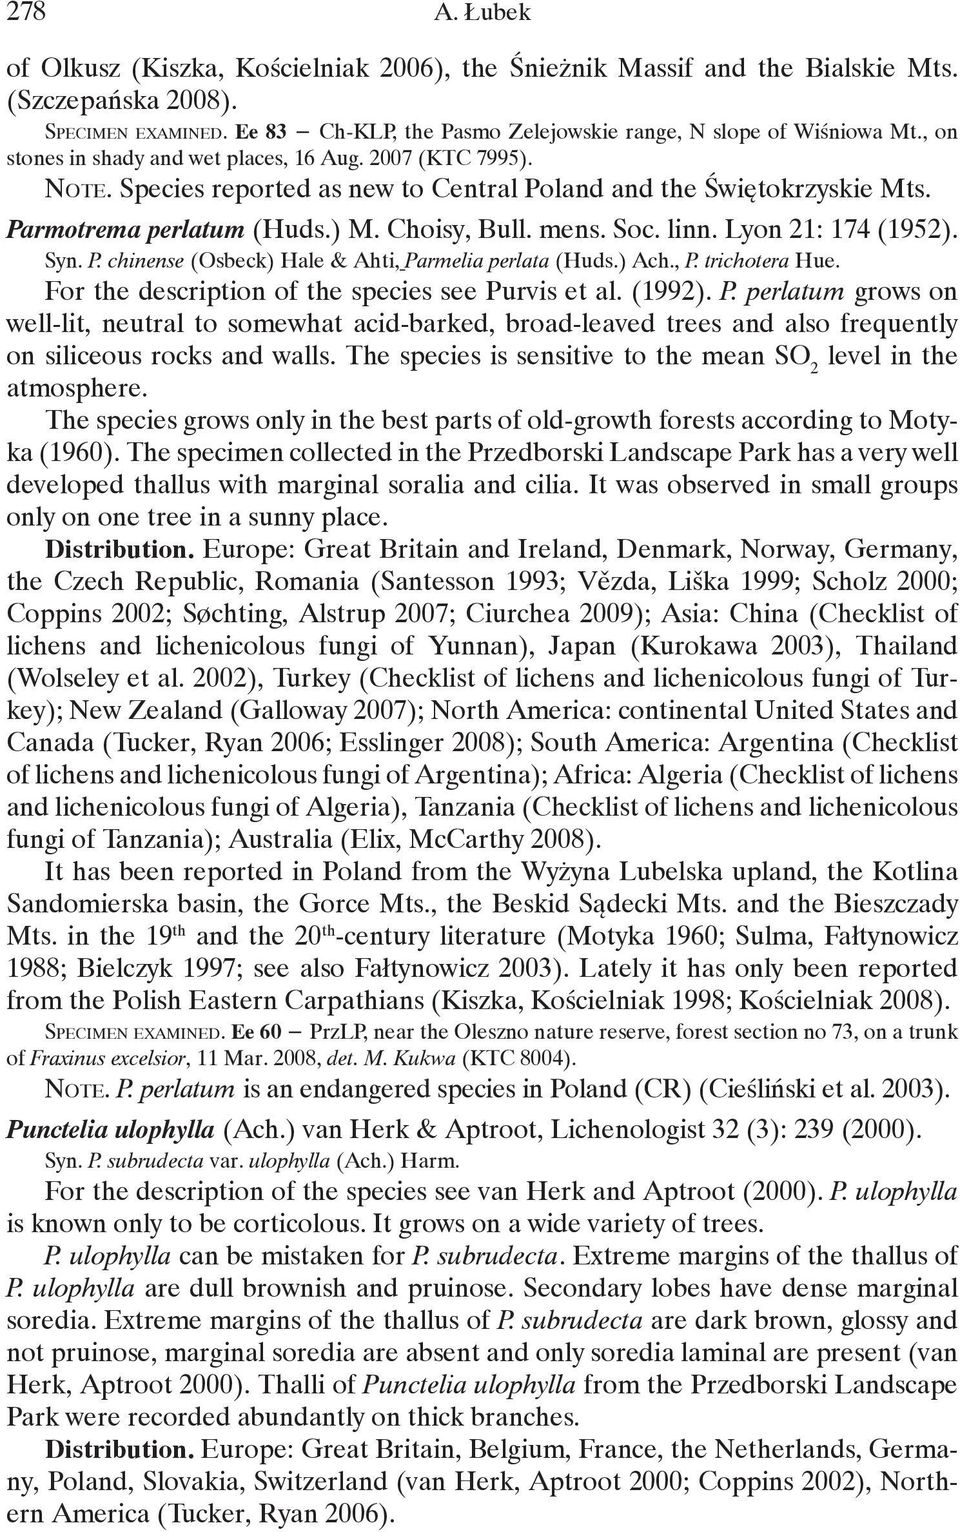 Species reported as new to Central Poland and the Świętokrzyskie Mts. Parmotrema perlatum (Huds.) M. Choisy, Bull. mens. Soc. linn. Lyon 21: 174 (1952). Syn. P. chinense (Osbeck) Hale & Ahti, Parmelia perlata (Huds.